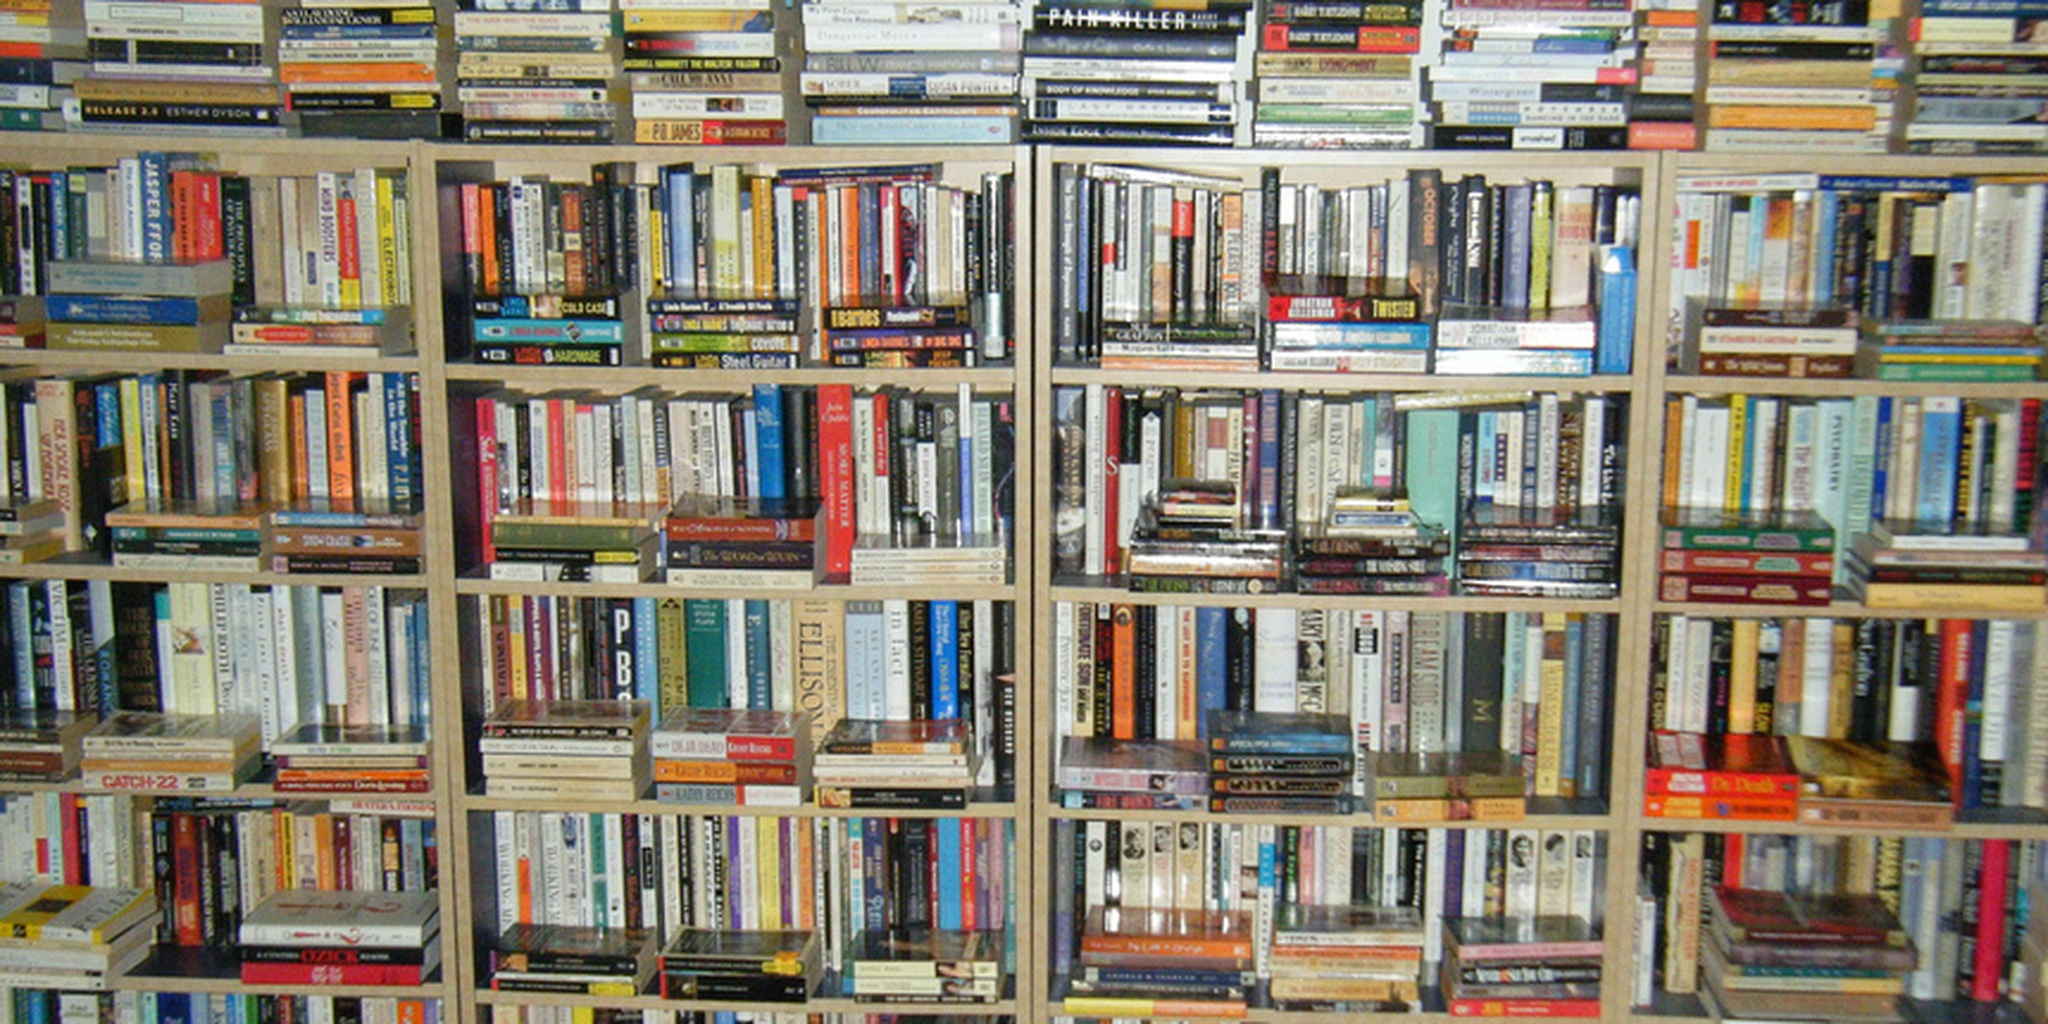 wall of moi's books in bedroom | Flickr - Photo Sharing!